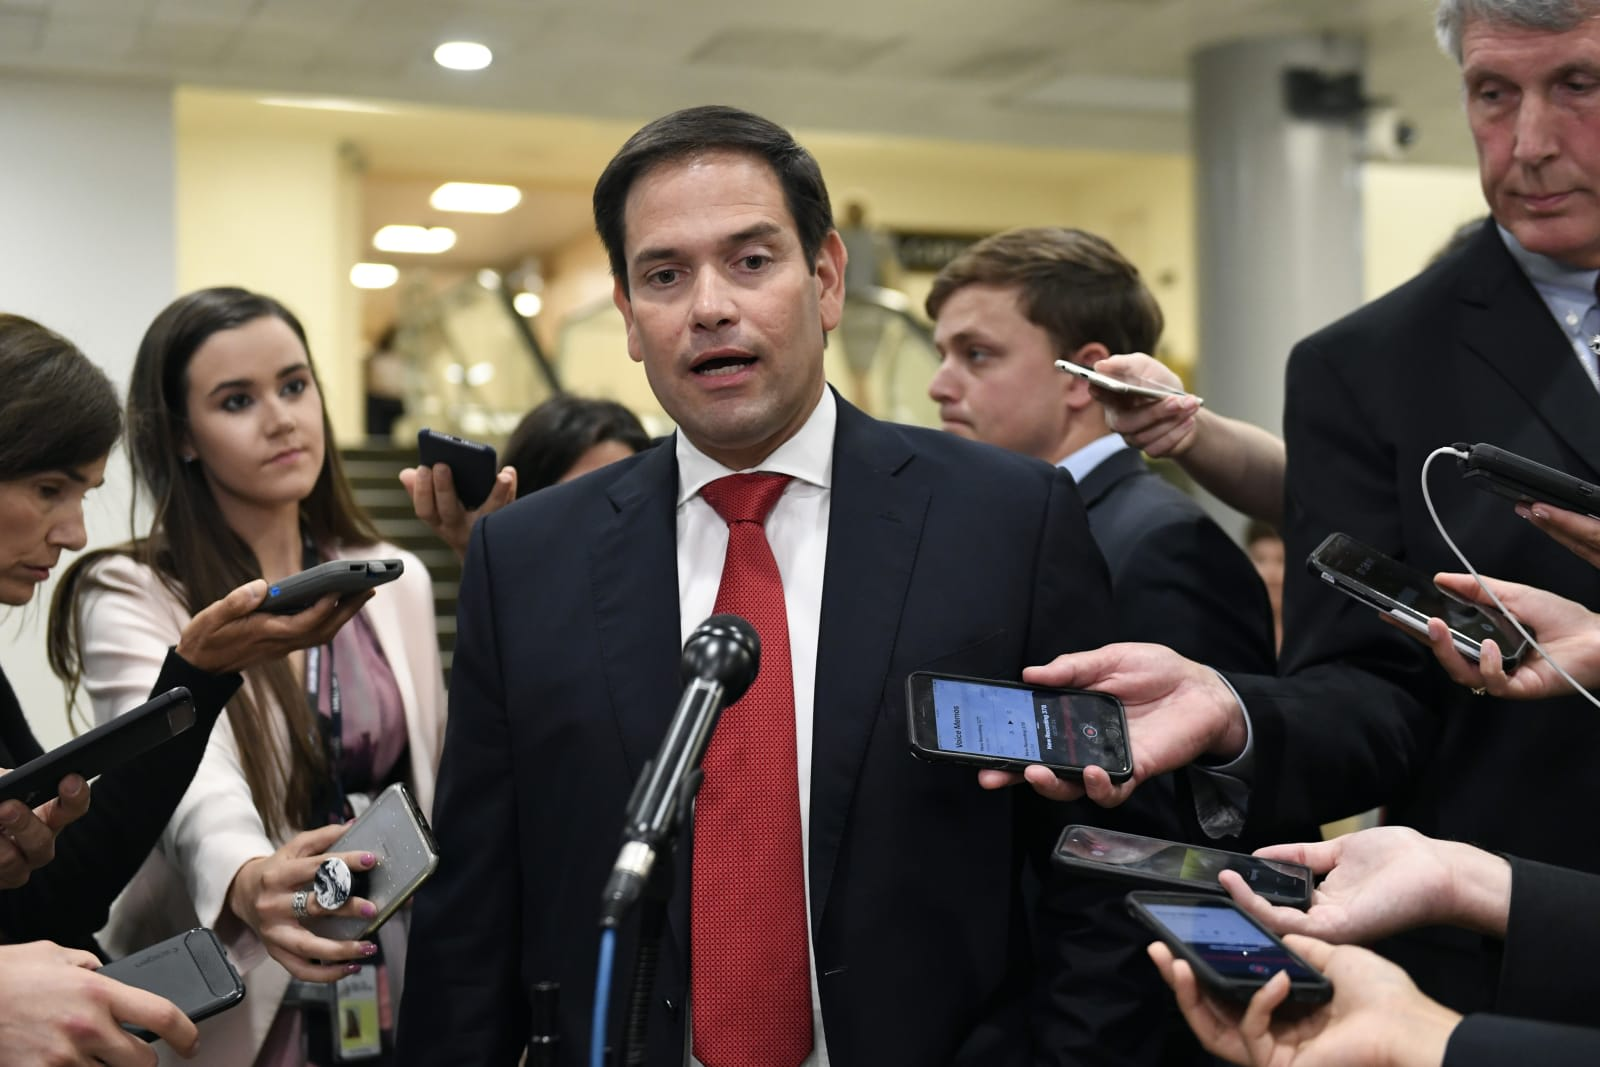 Marco Rubio calls for TikTok review over censorship claims